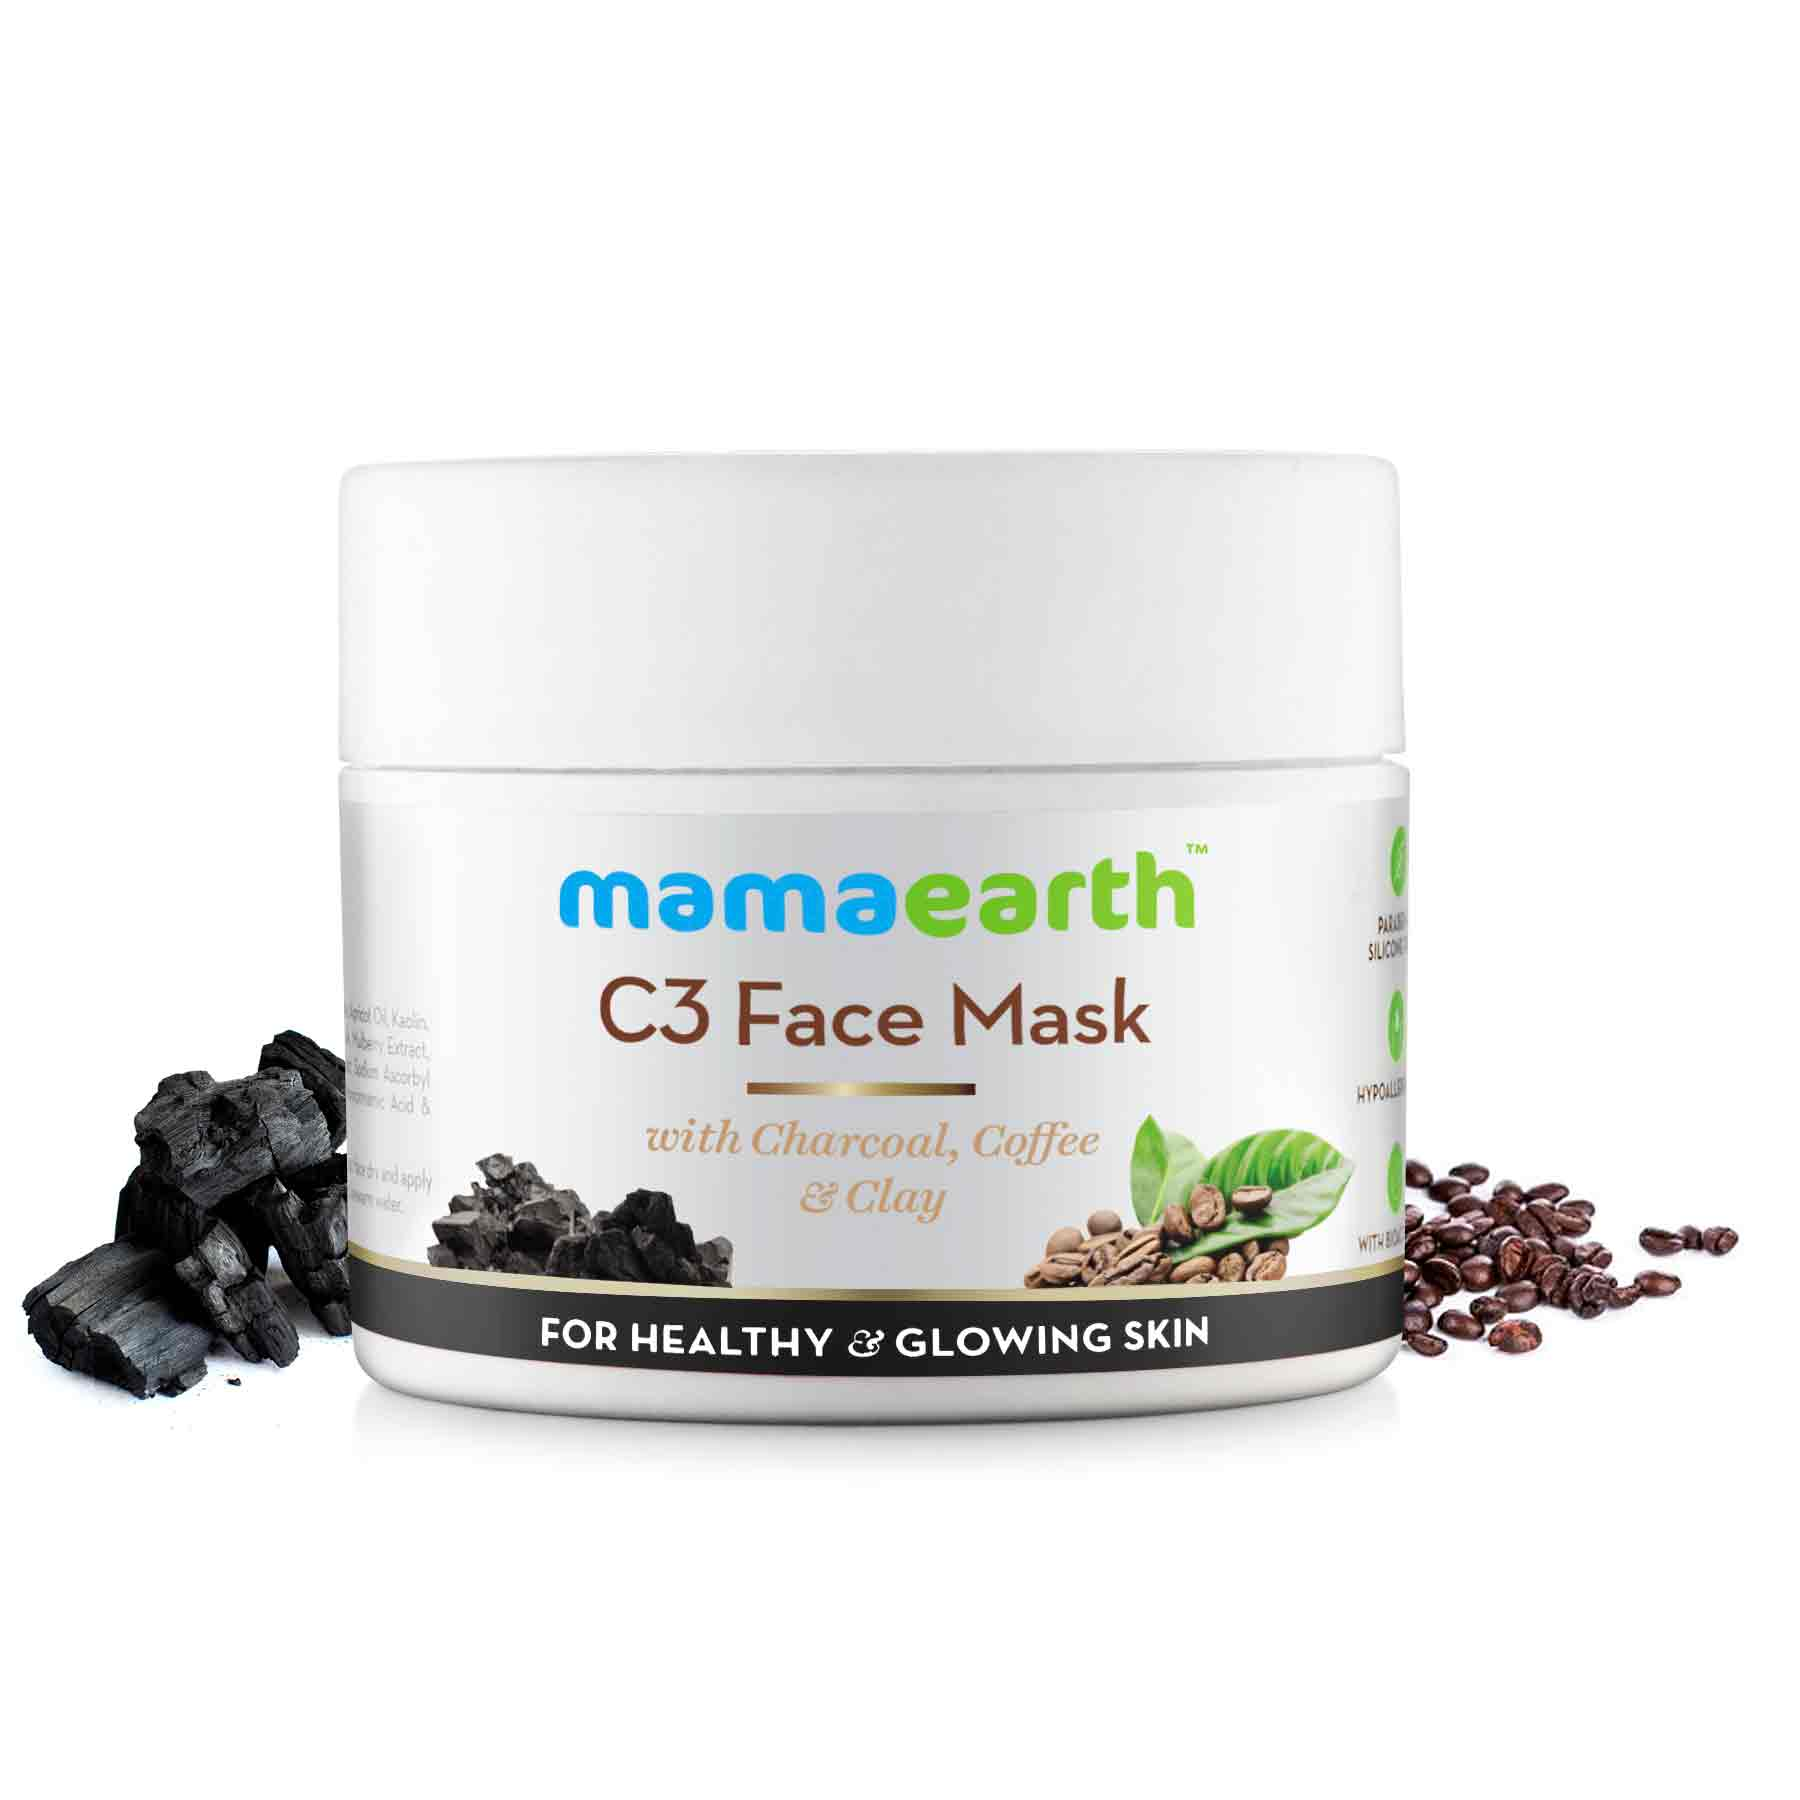 C3 Face Mask For Glowing Skin Organic Products Mamaearth